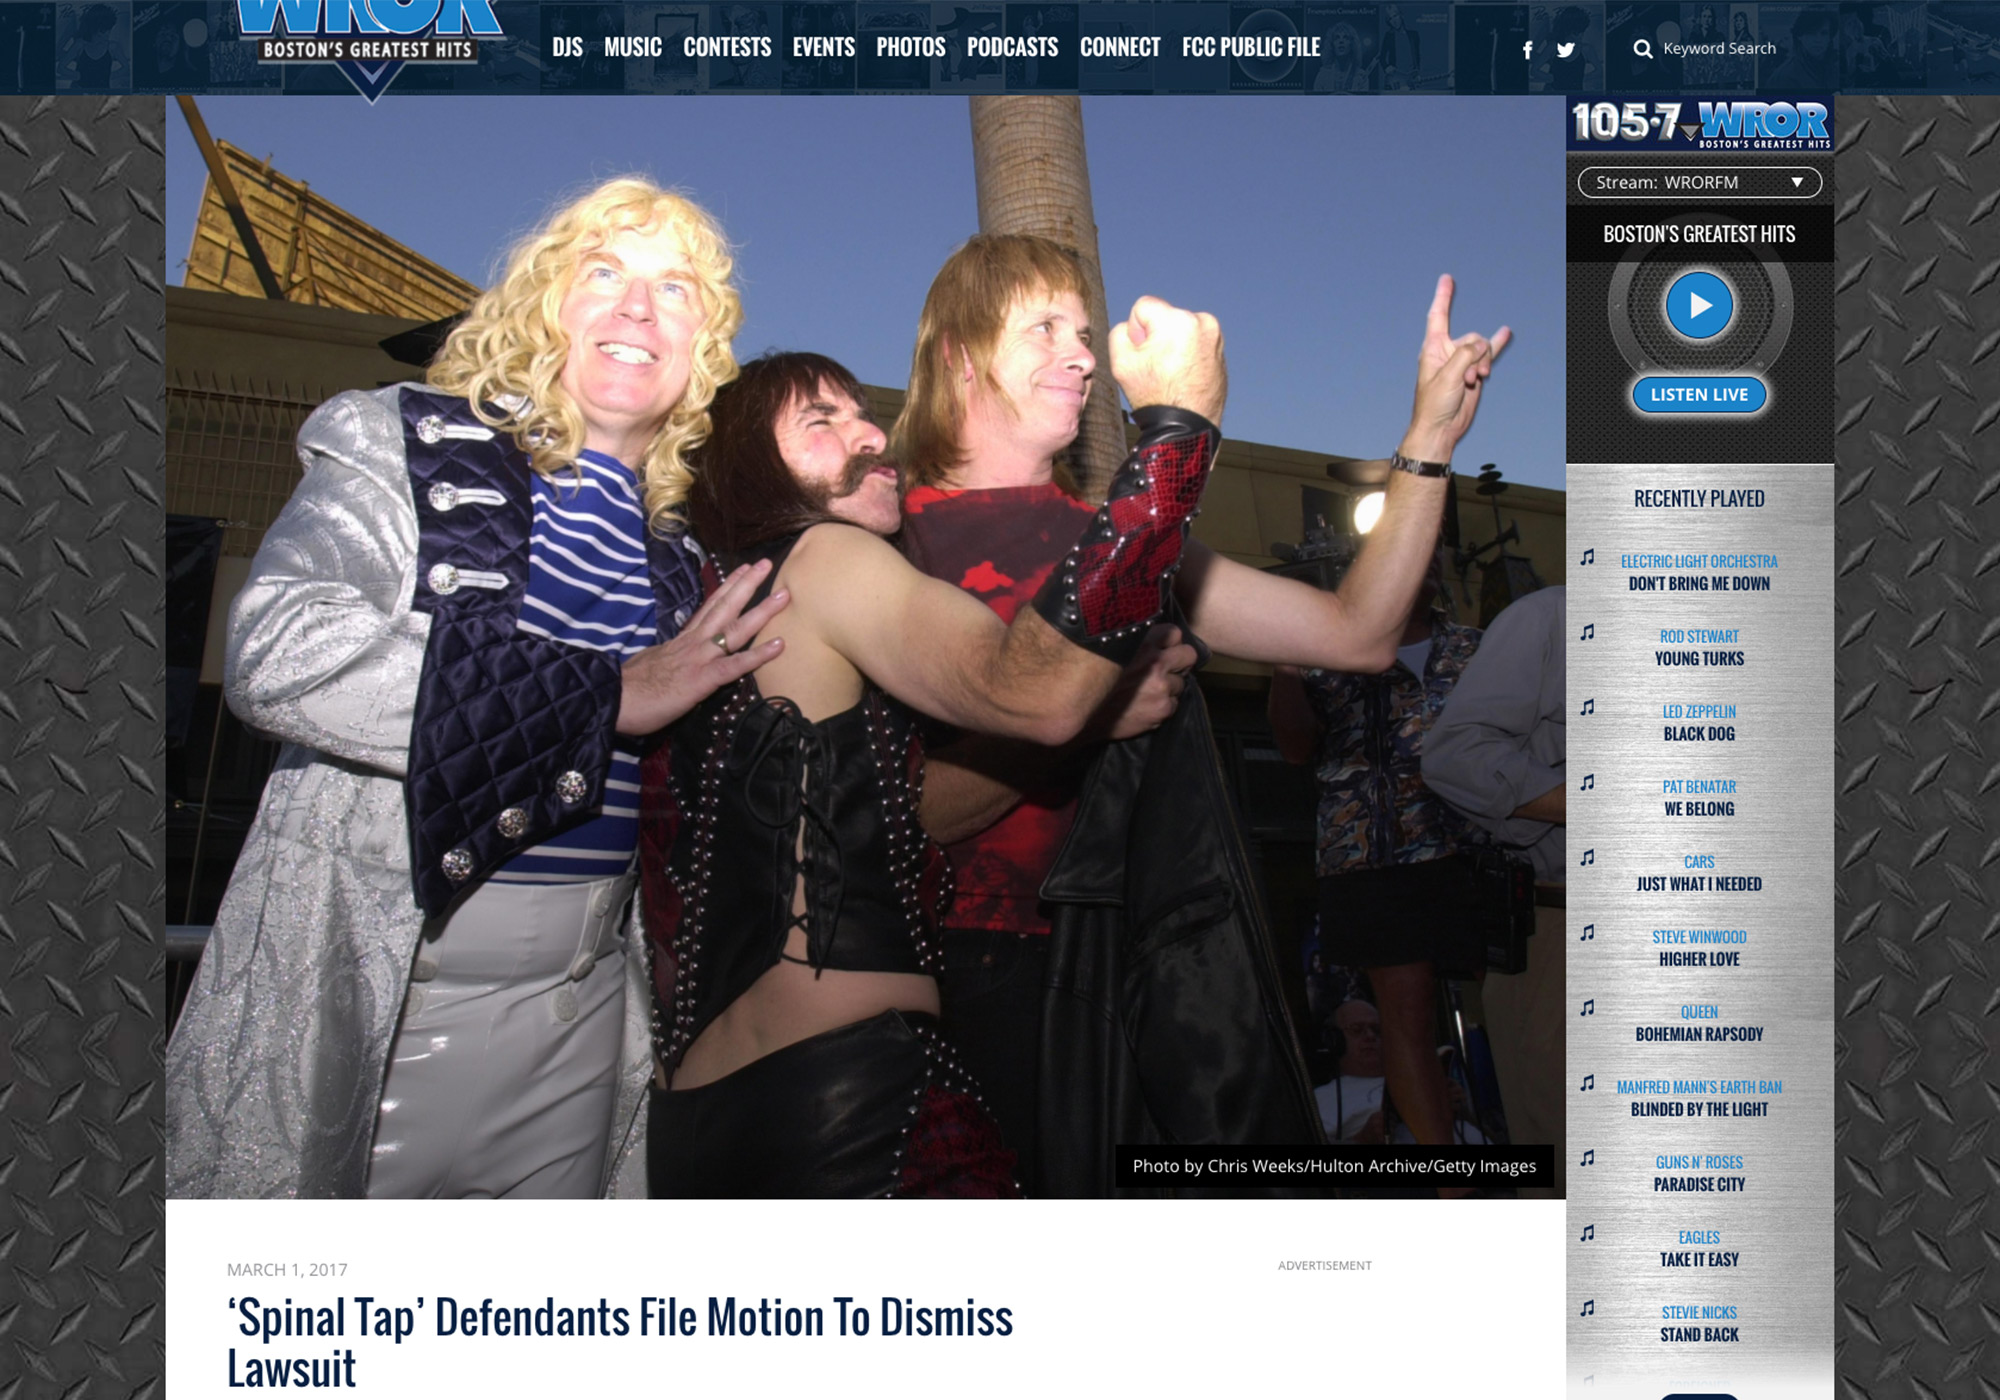 Fairness Rocks News 'Spinal Tap' Defendants File Motion To Dismiss Lawsuit